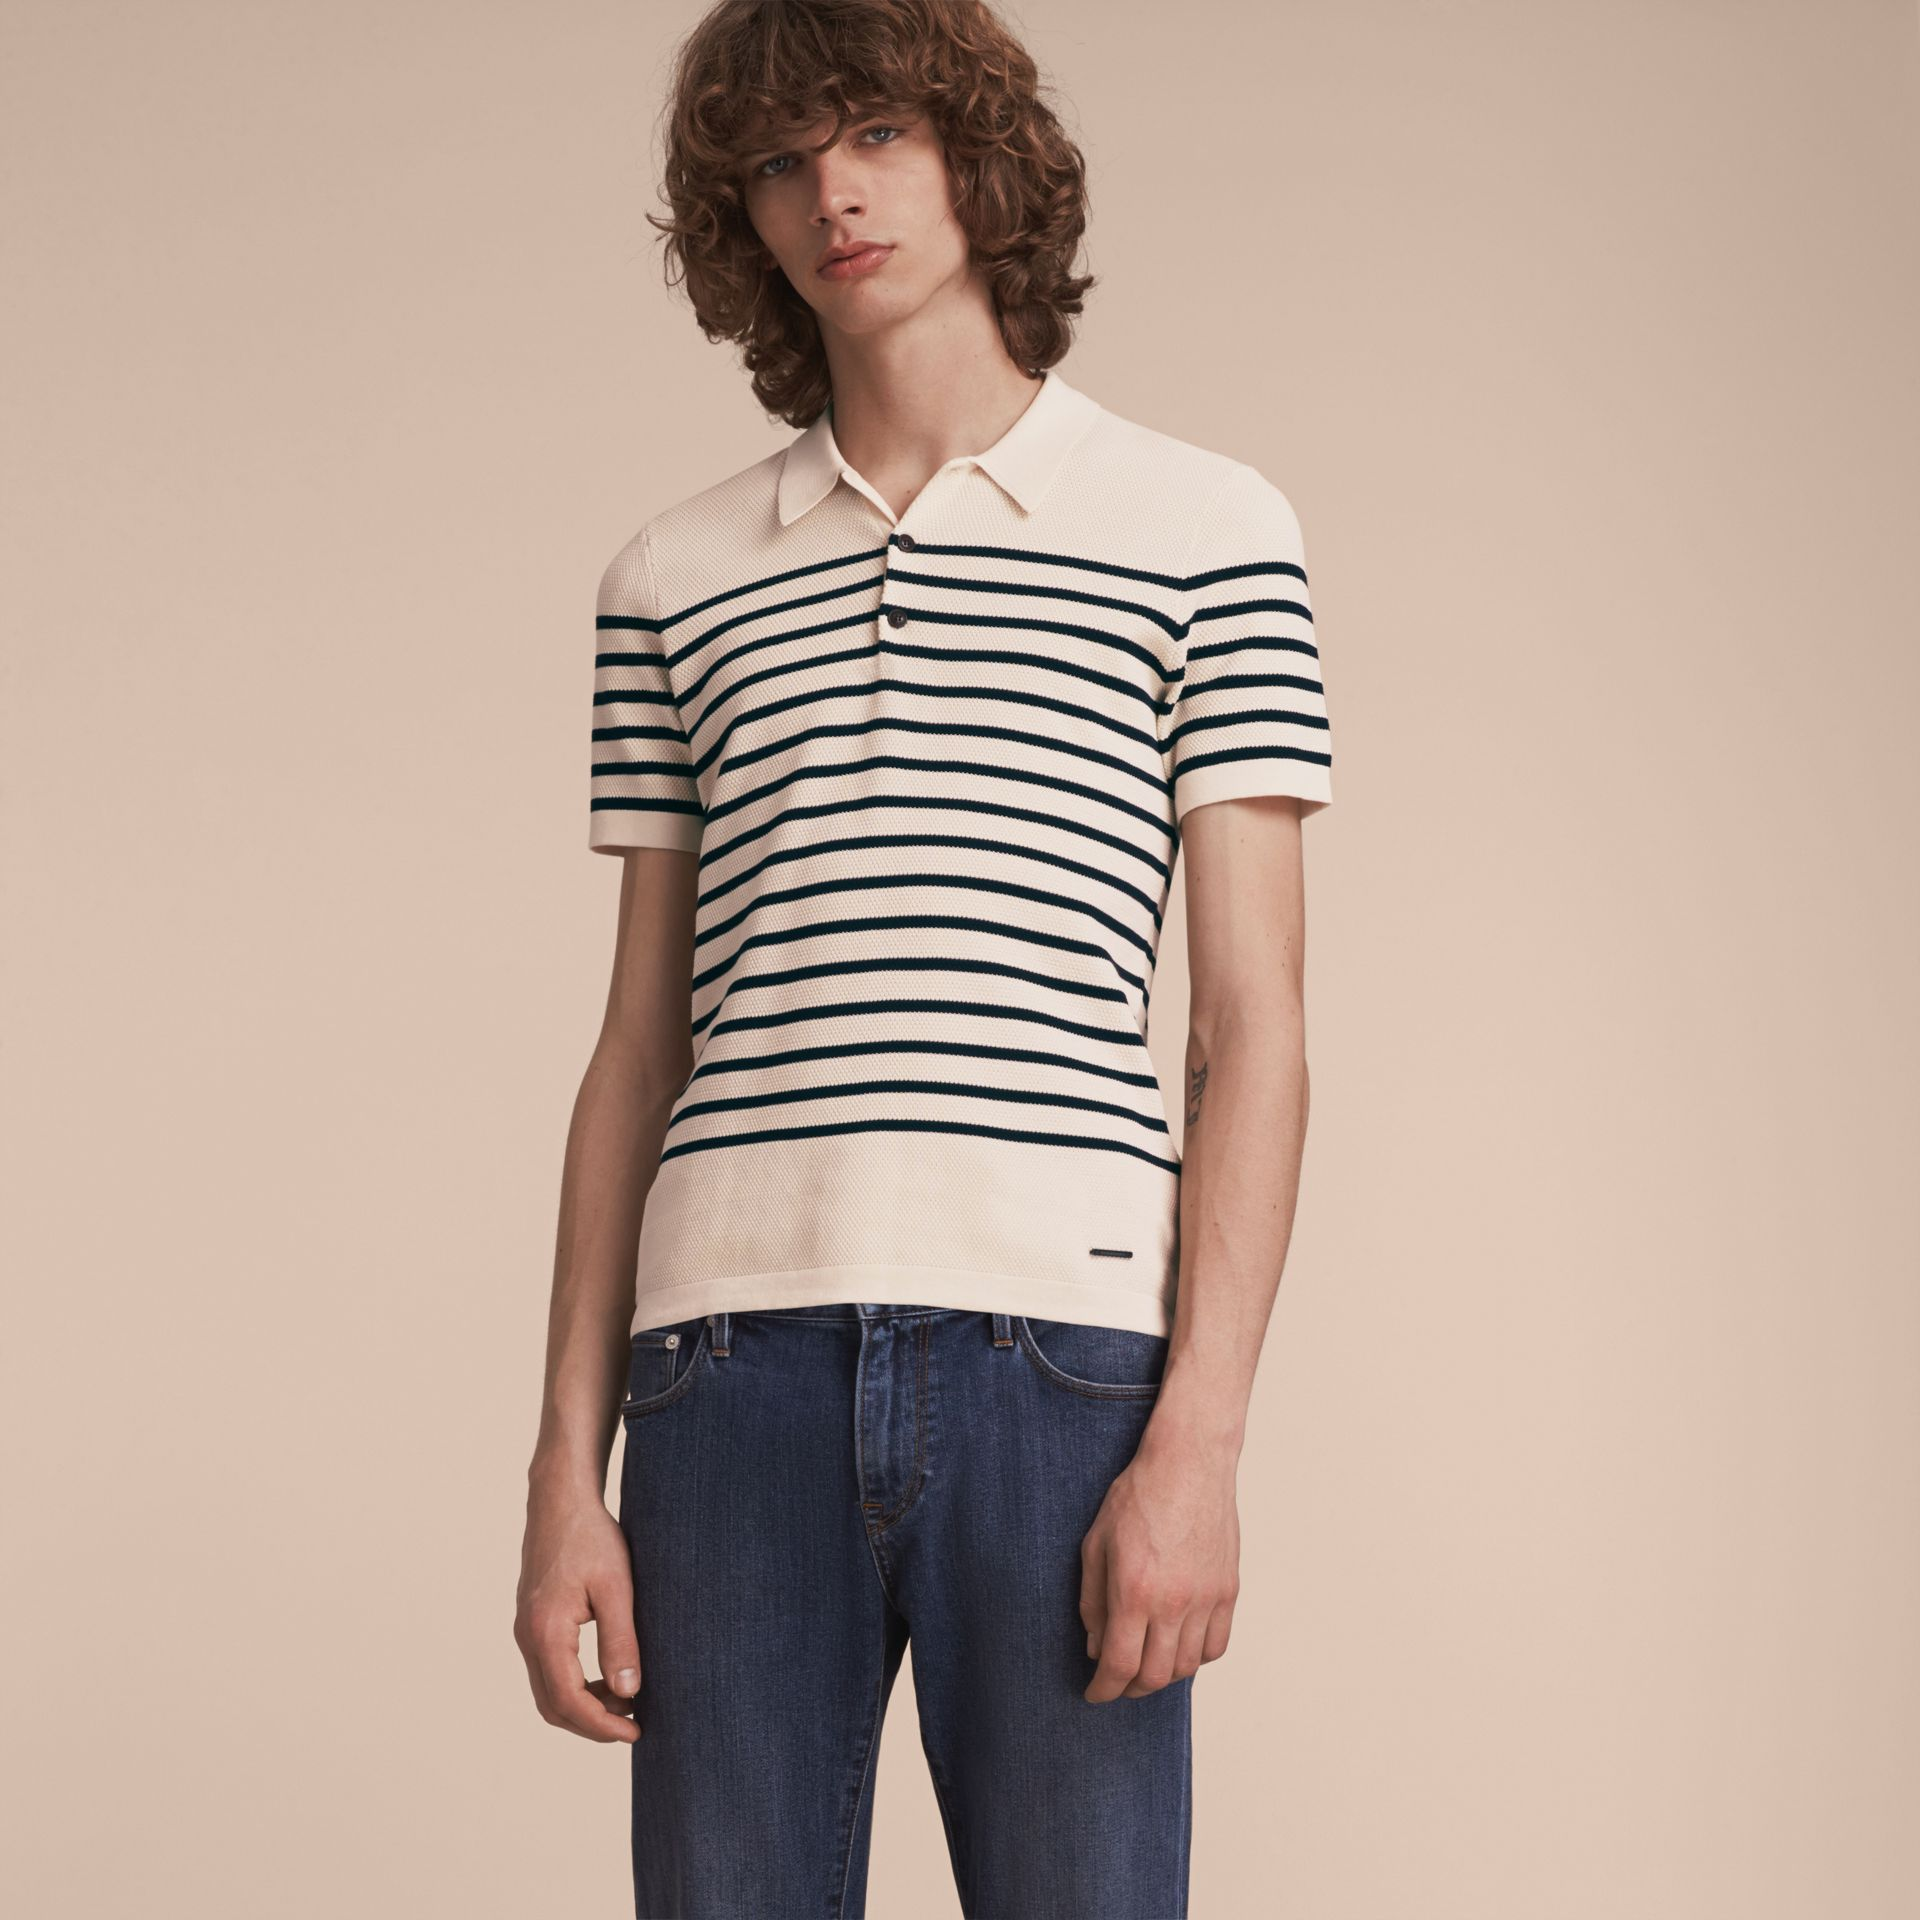 Striped Knitted Cotton Polo Shirt in White - Men | Burberry - gallery image 6